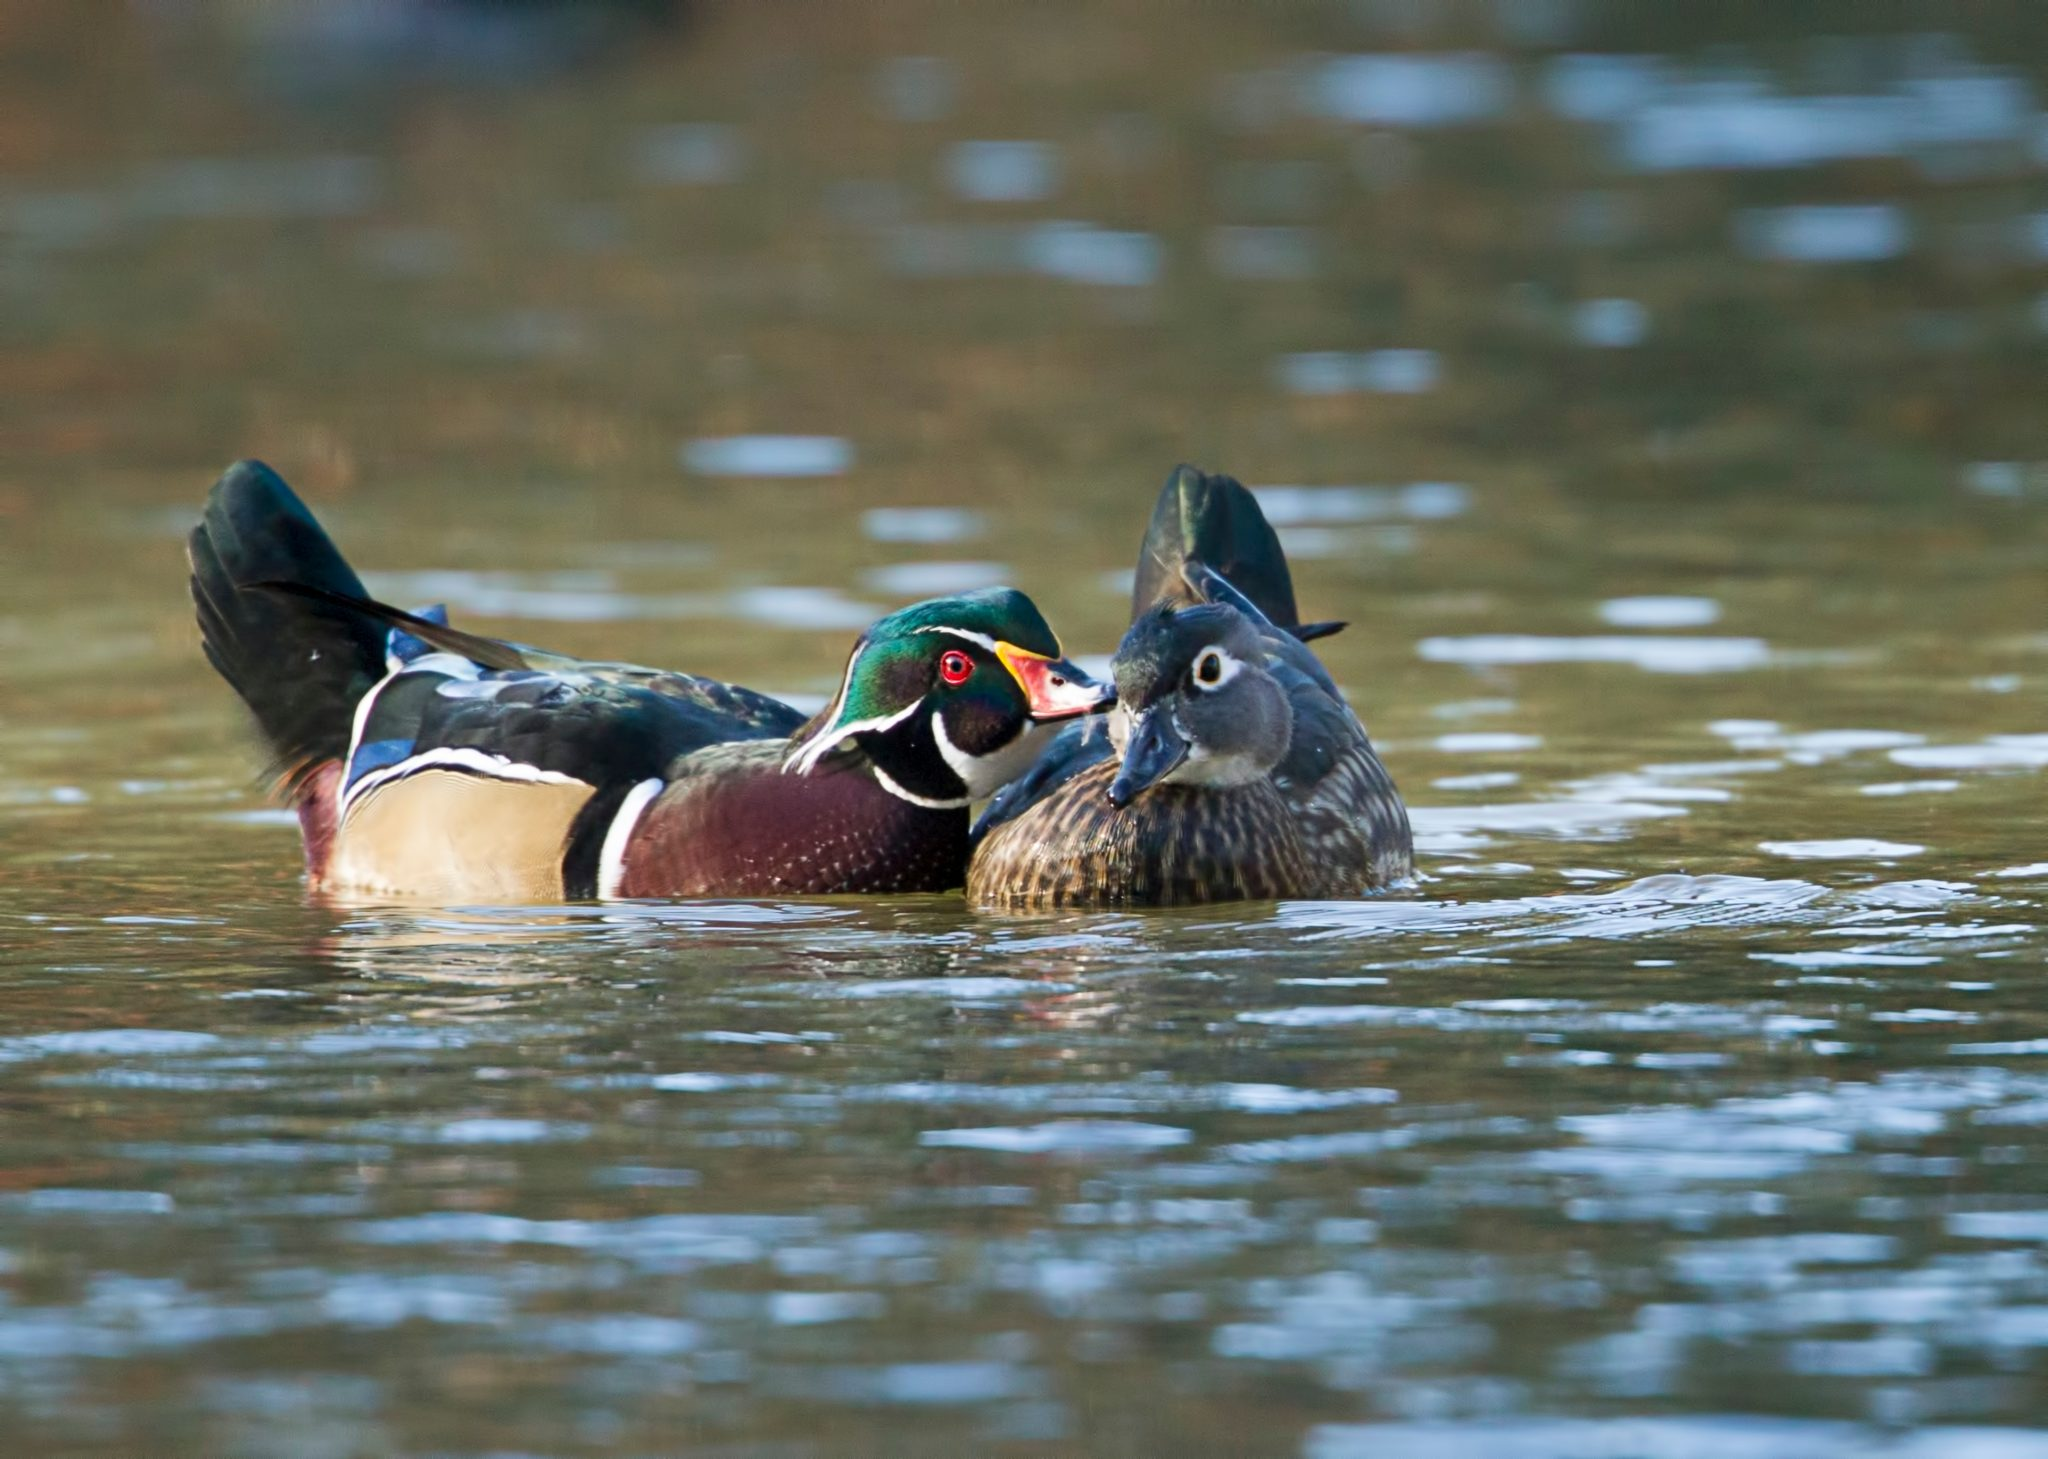 Wood ducks swimming